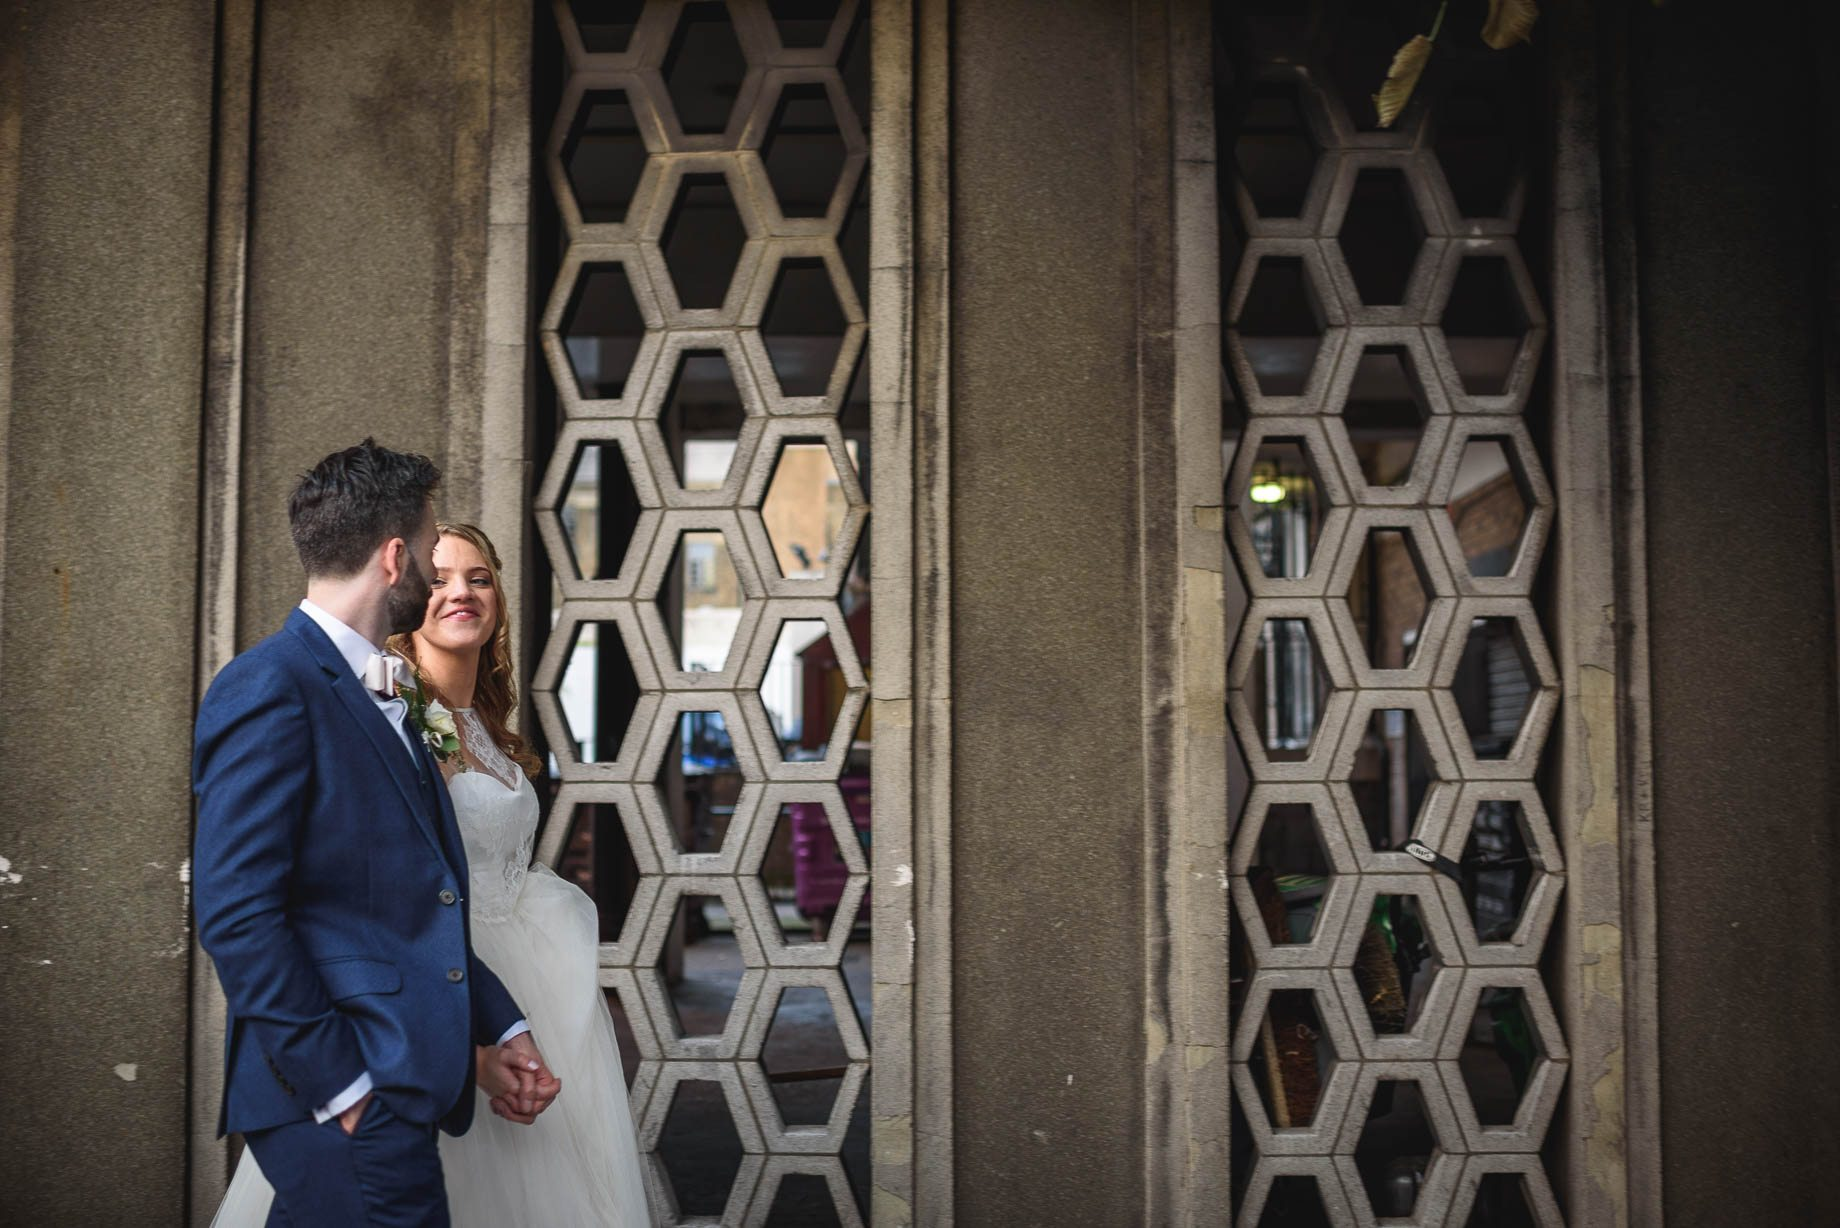 London Wedding Photography - Guy Collier Photography - LJ + Russell (133 of 155)